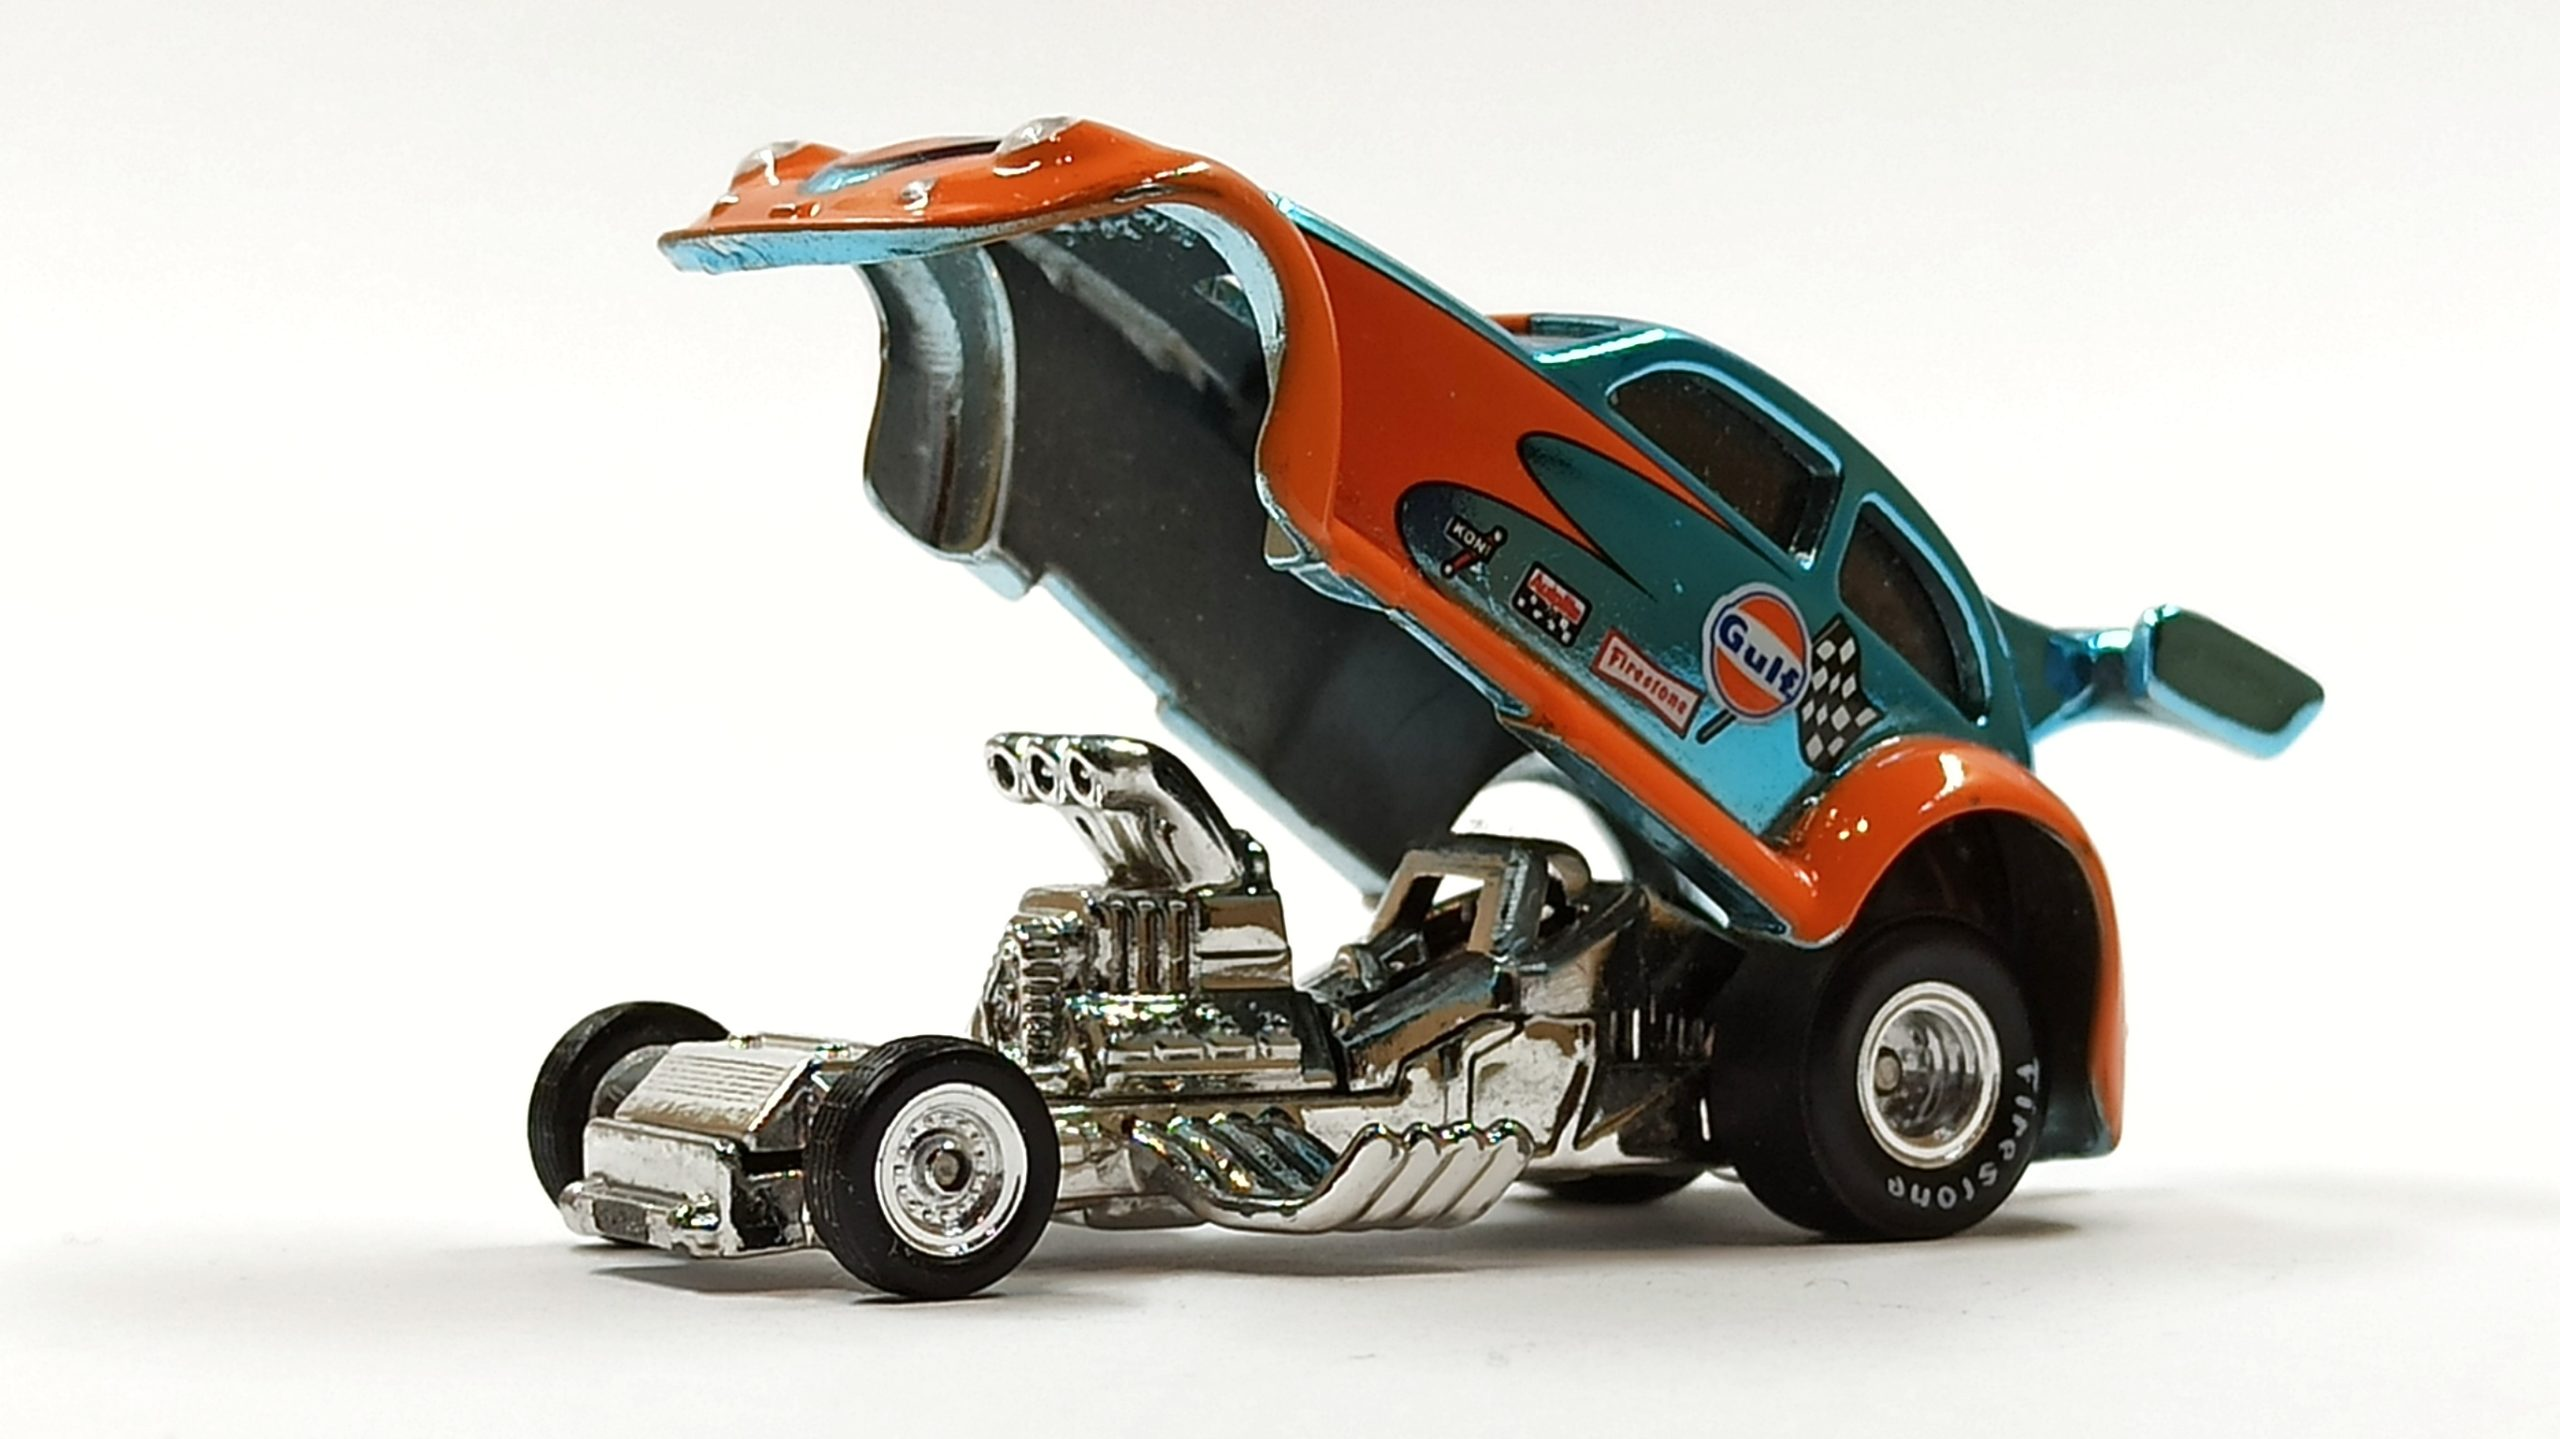 Hot Wheels Custom '56 Volkswagen Drag Beetle (Y0452) 2013 HWC Gulf Racing (3/4) (1 of 4.000) spectraflame light blue (Gulf) side angle open chassis